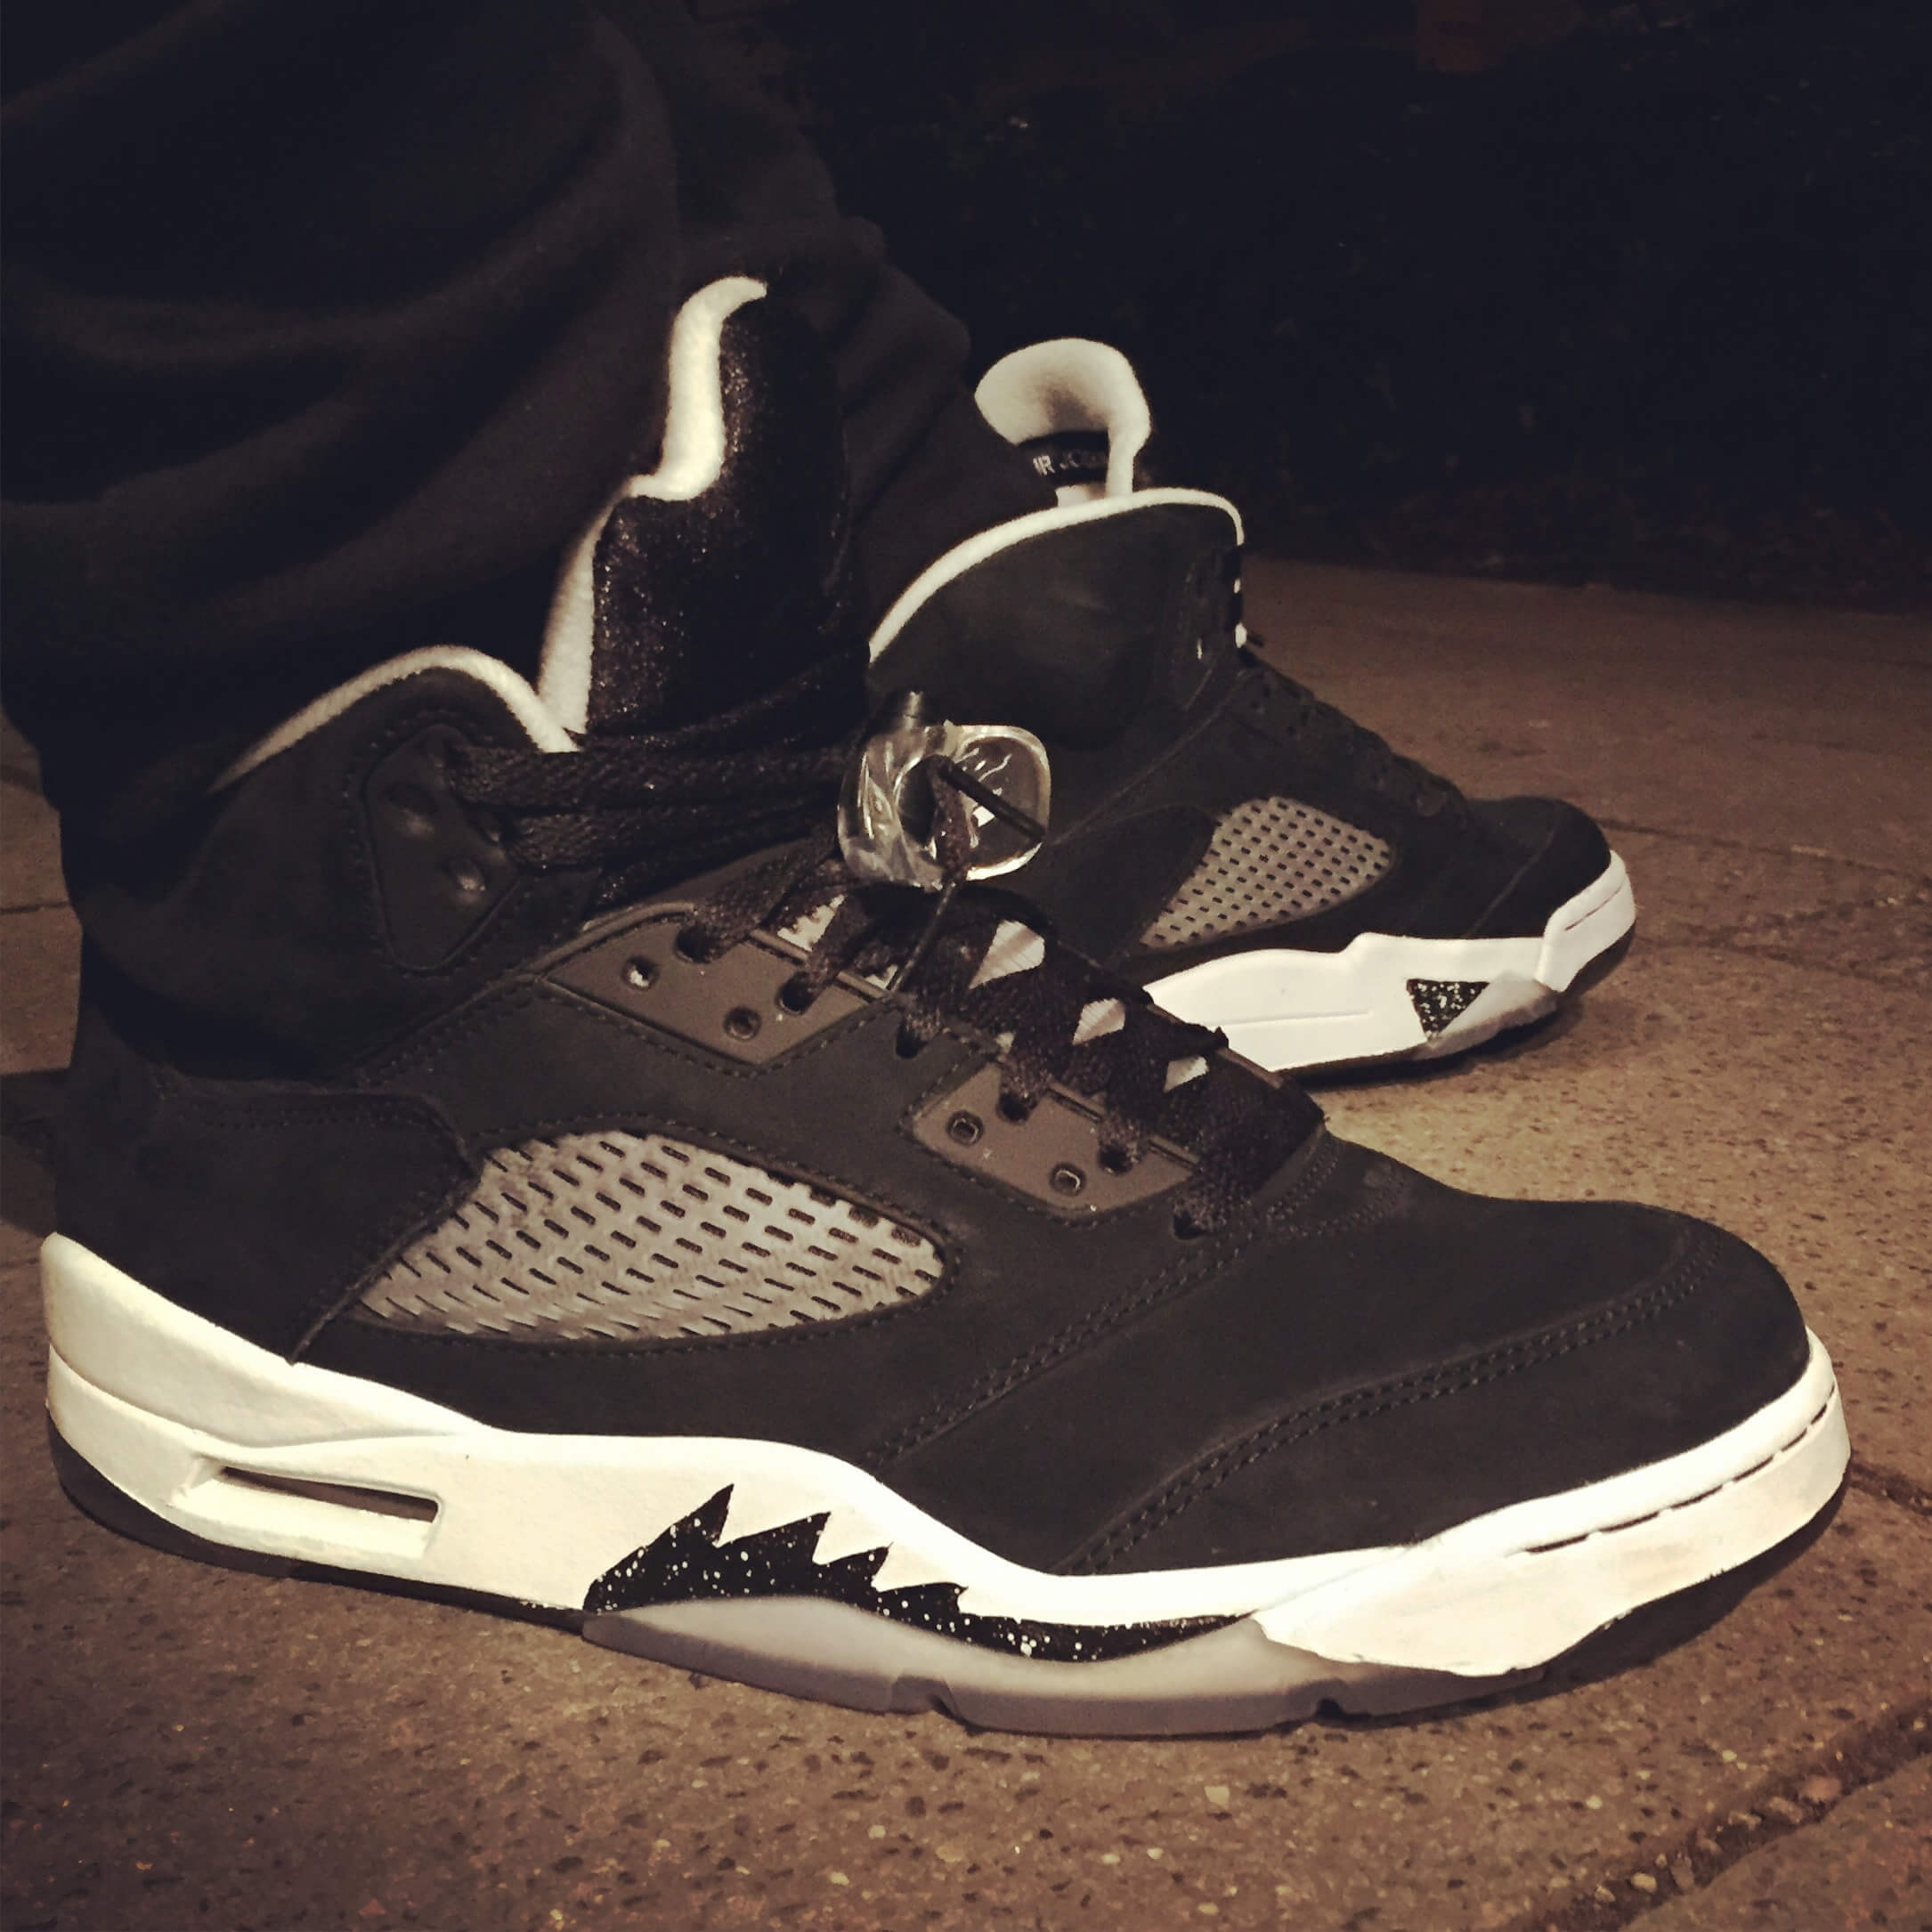 Air-Jordan-5-Oreo-Side-View-Benstah-Onfeet